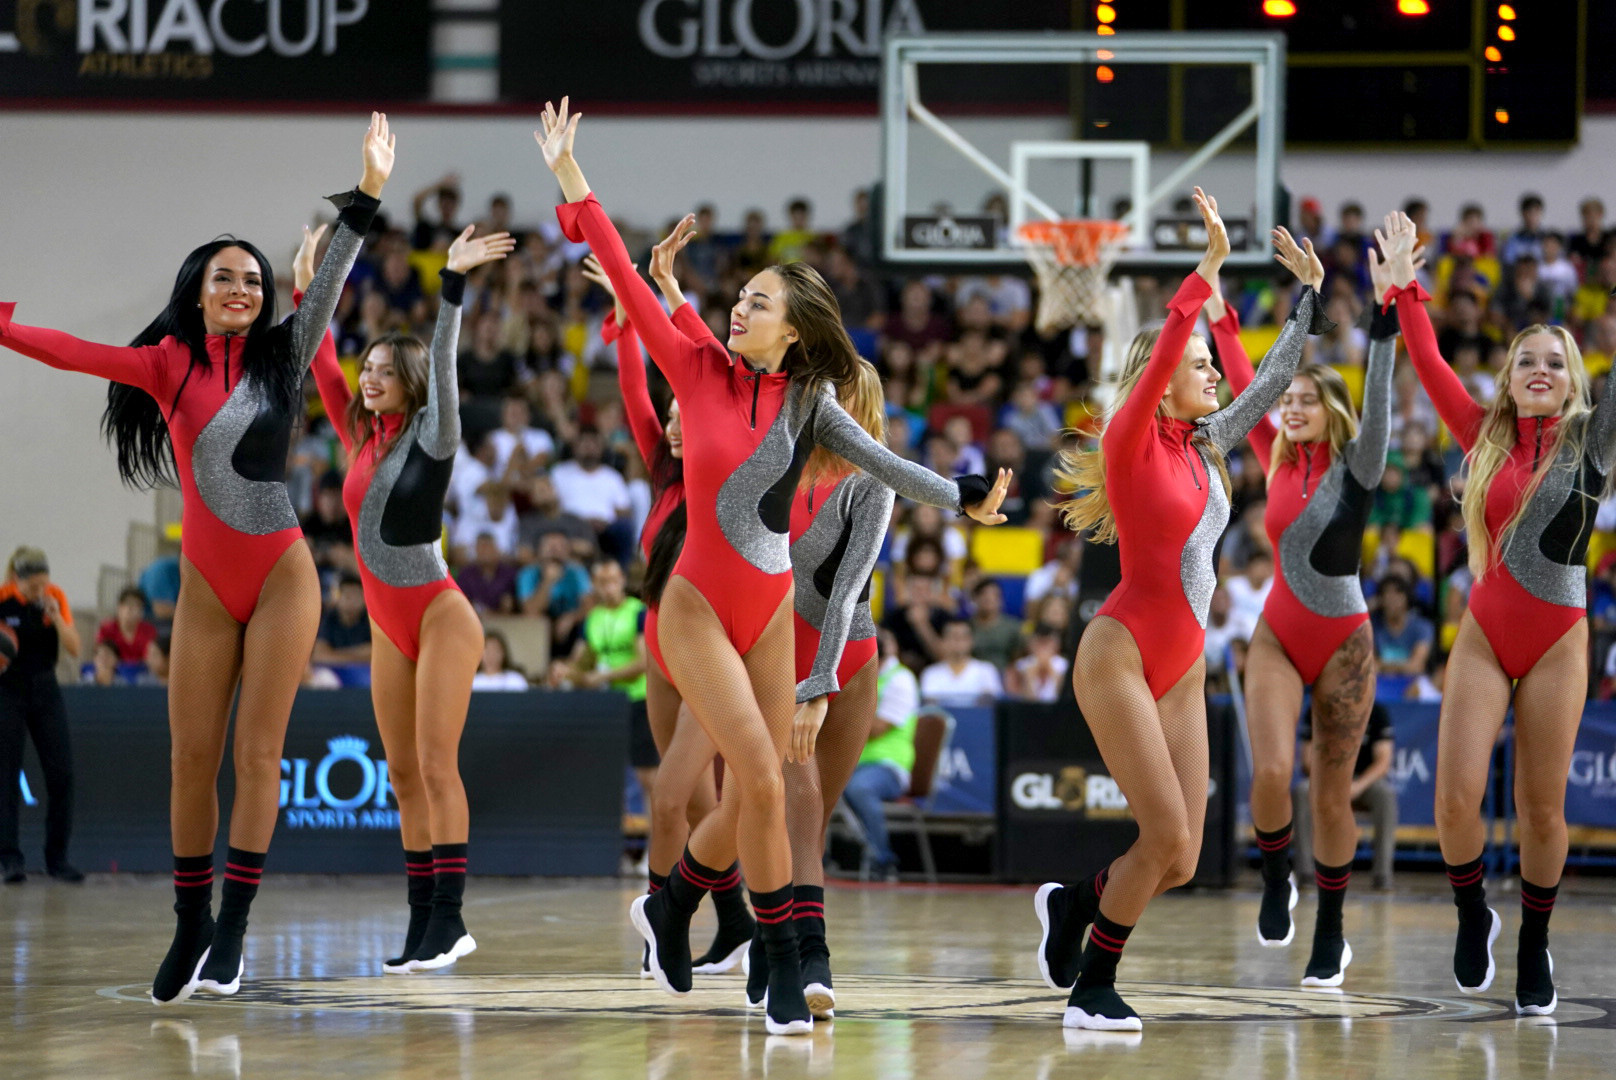 The cheerleaders put on a great half-time show for the packed out auditorium at Gloria Sports Arena ©GSA